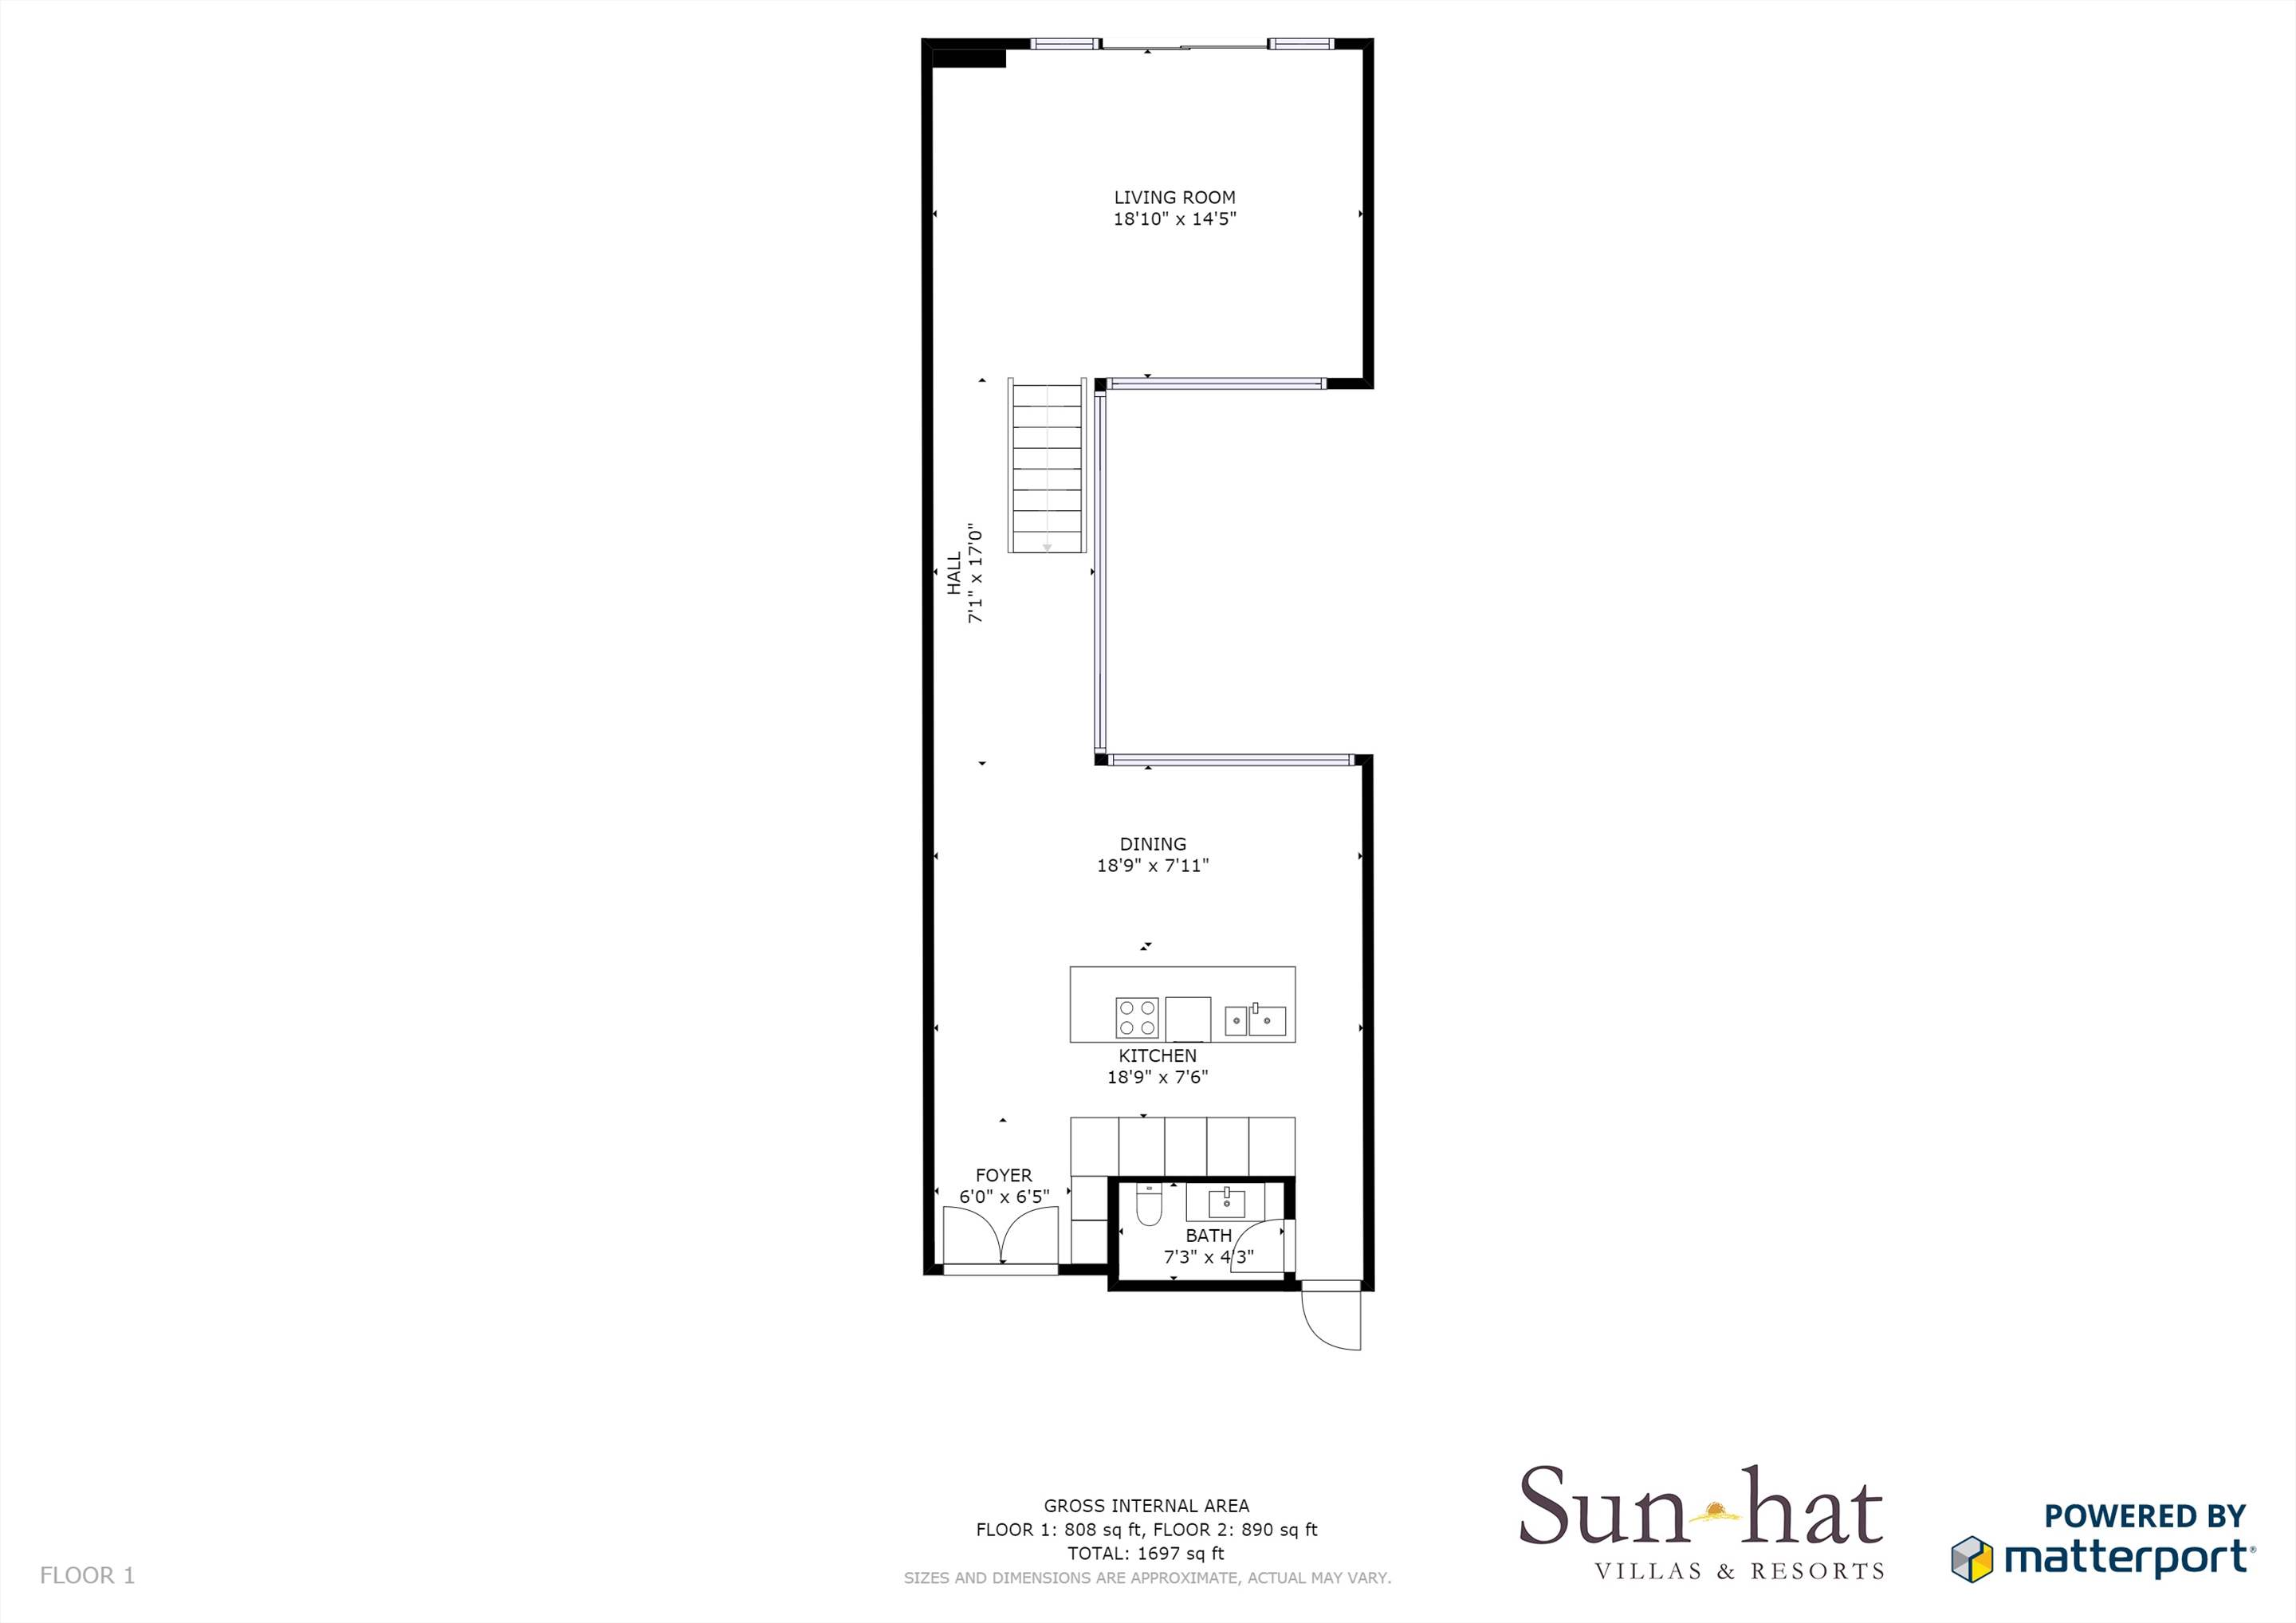 Pine Cliffs Terraces, 2 Bedroom, room only basis  Floorplan #1